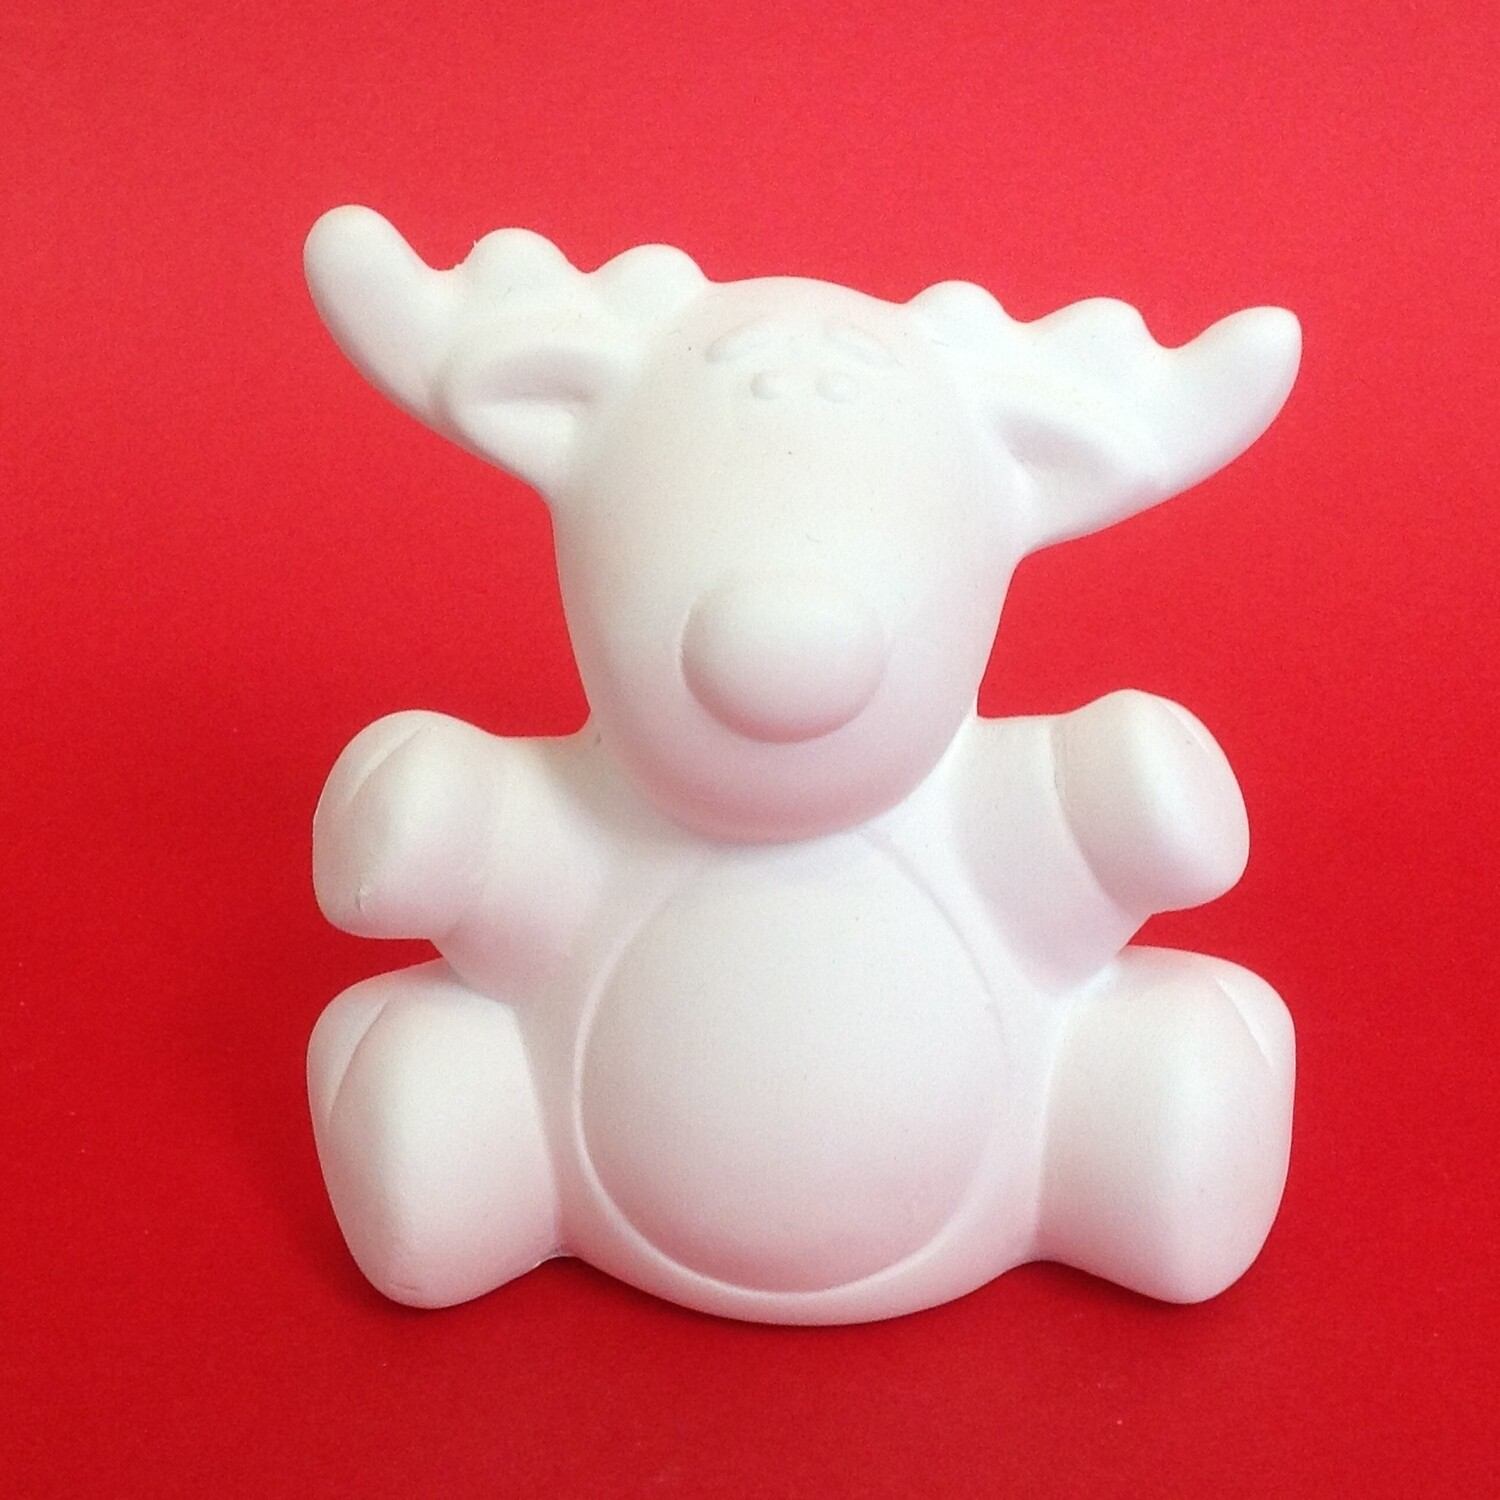 Reindeer figure - small